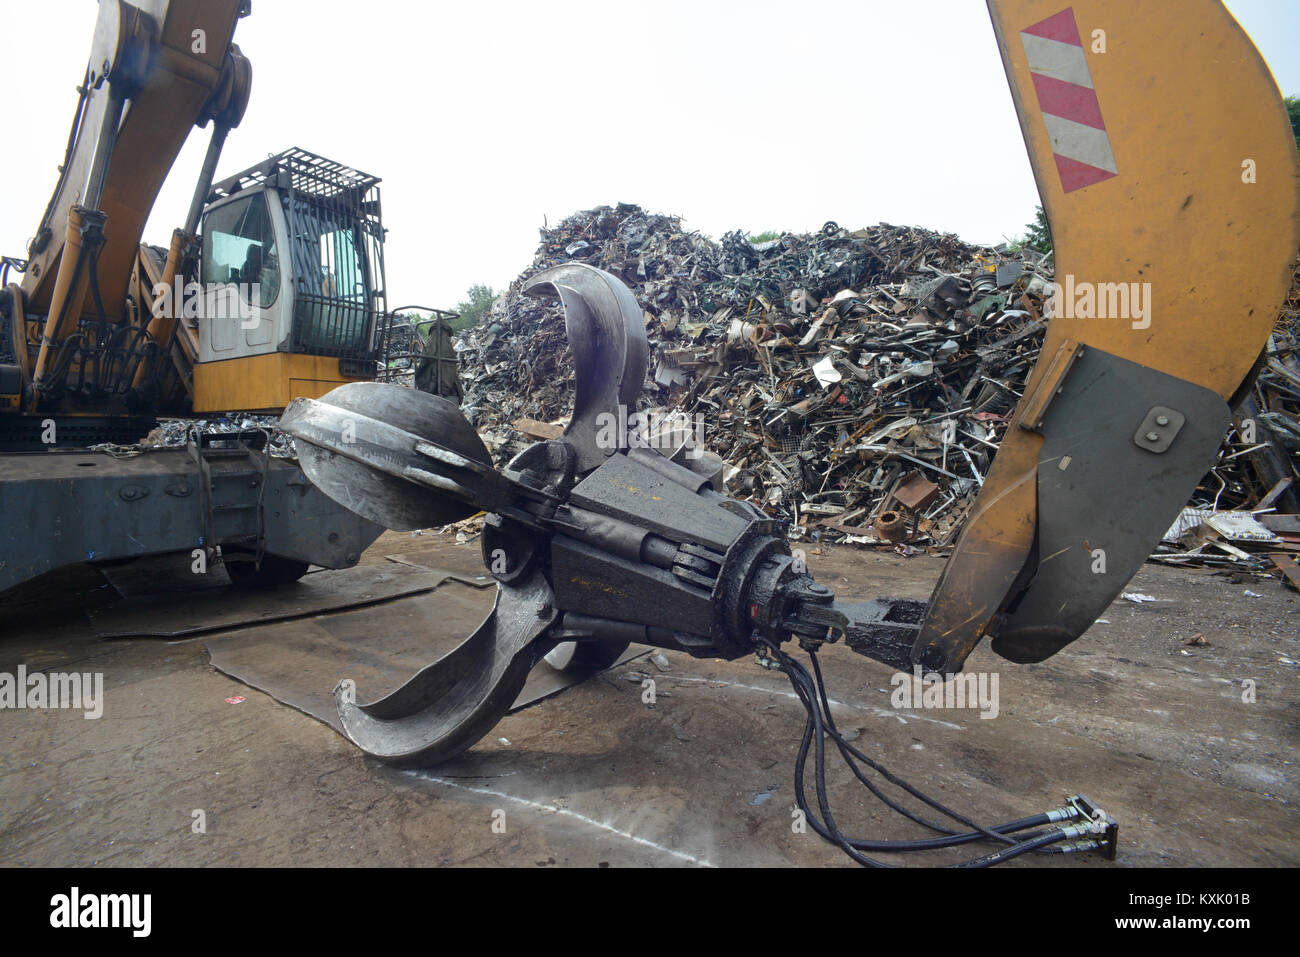 giant grab on crane processing waste electrical and eletronic equipment (weee) at scrapyard leeds yorkshire united - Stock Image